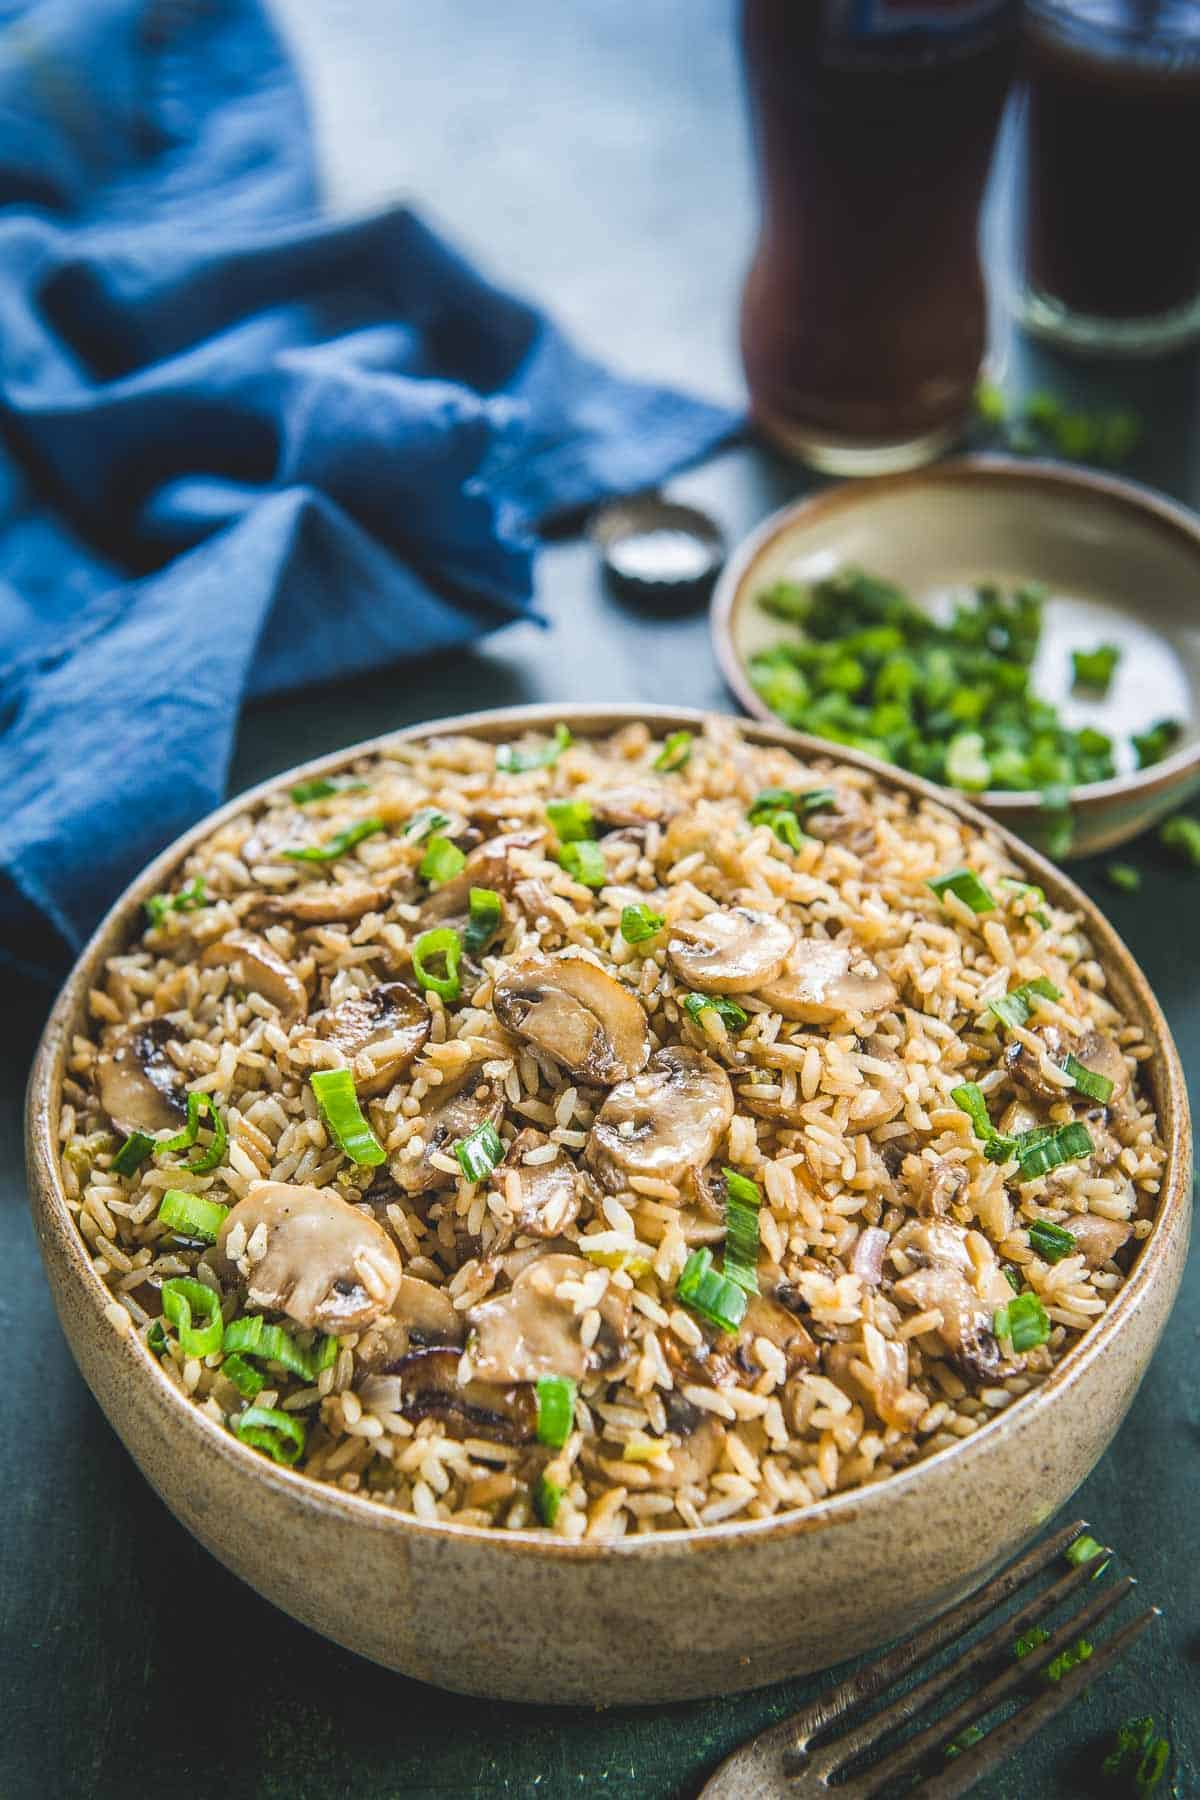 Mushroom Fried Rice served in a bowl.